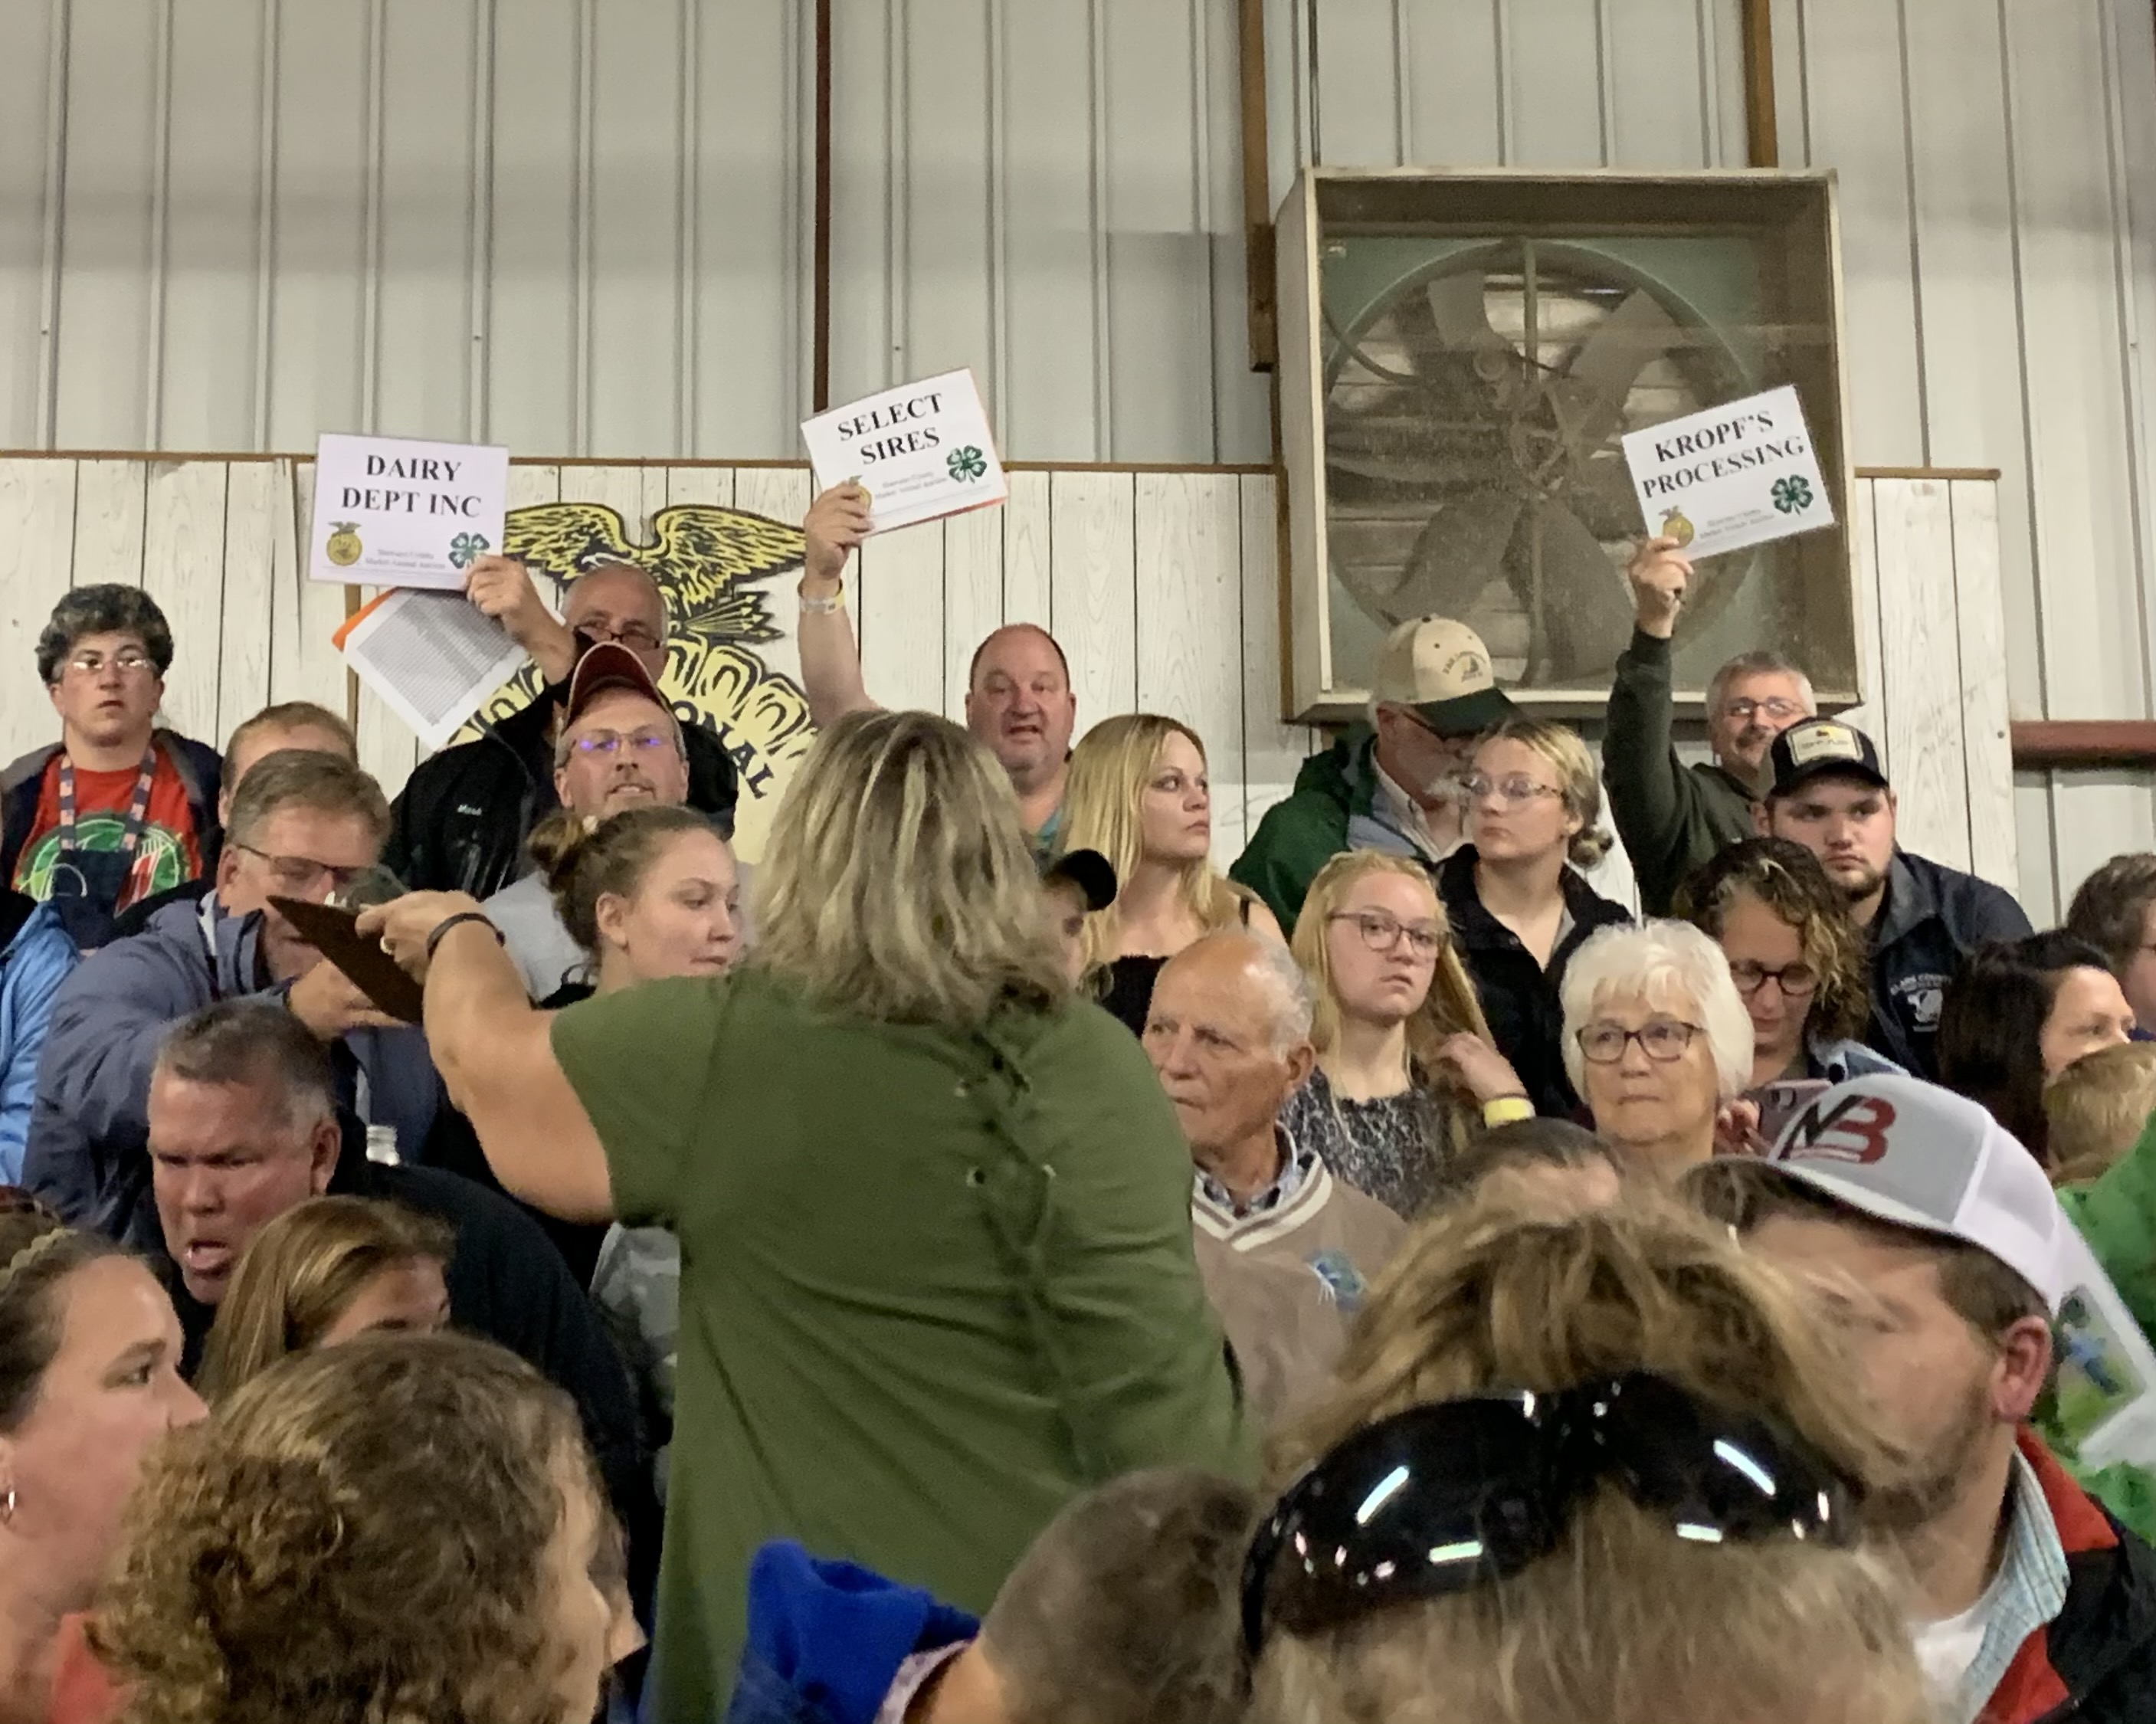 Bids arise from Dairy Department Inc., Select Sires and Kropf's Processing as representatives hope to get the winning bid for the livestock at the Shawano County Fair on Sept. 3.<br />(Luke Reimer   NEW Media)